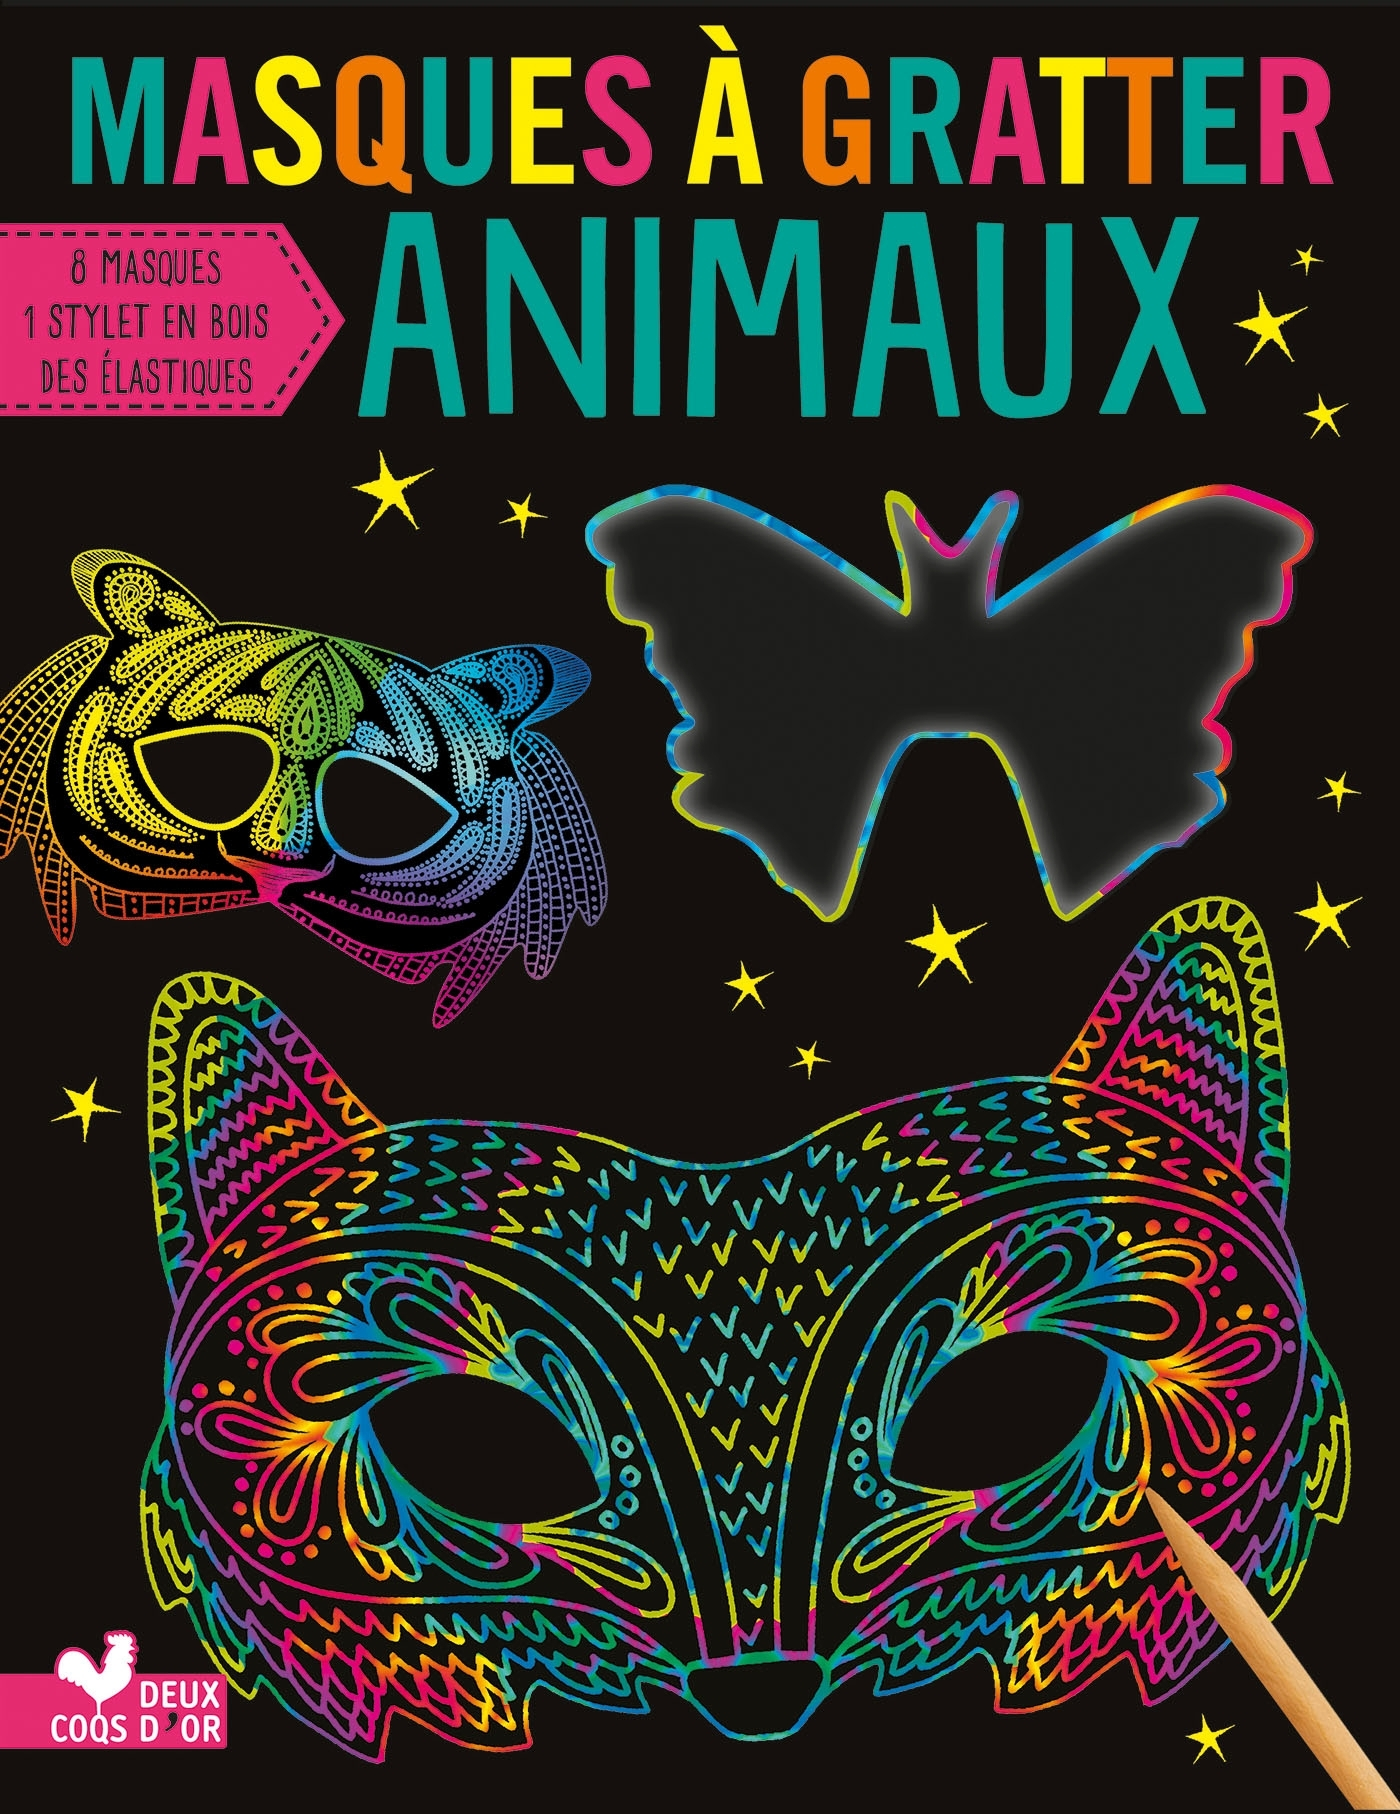 MASQUES A GRATTER - ANIMAUX